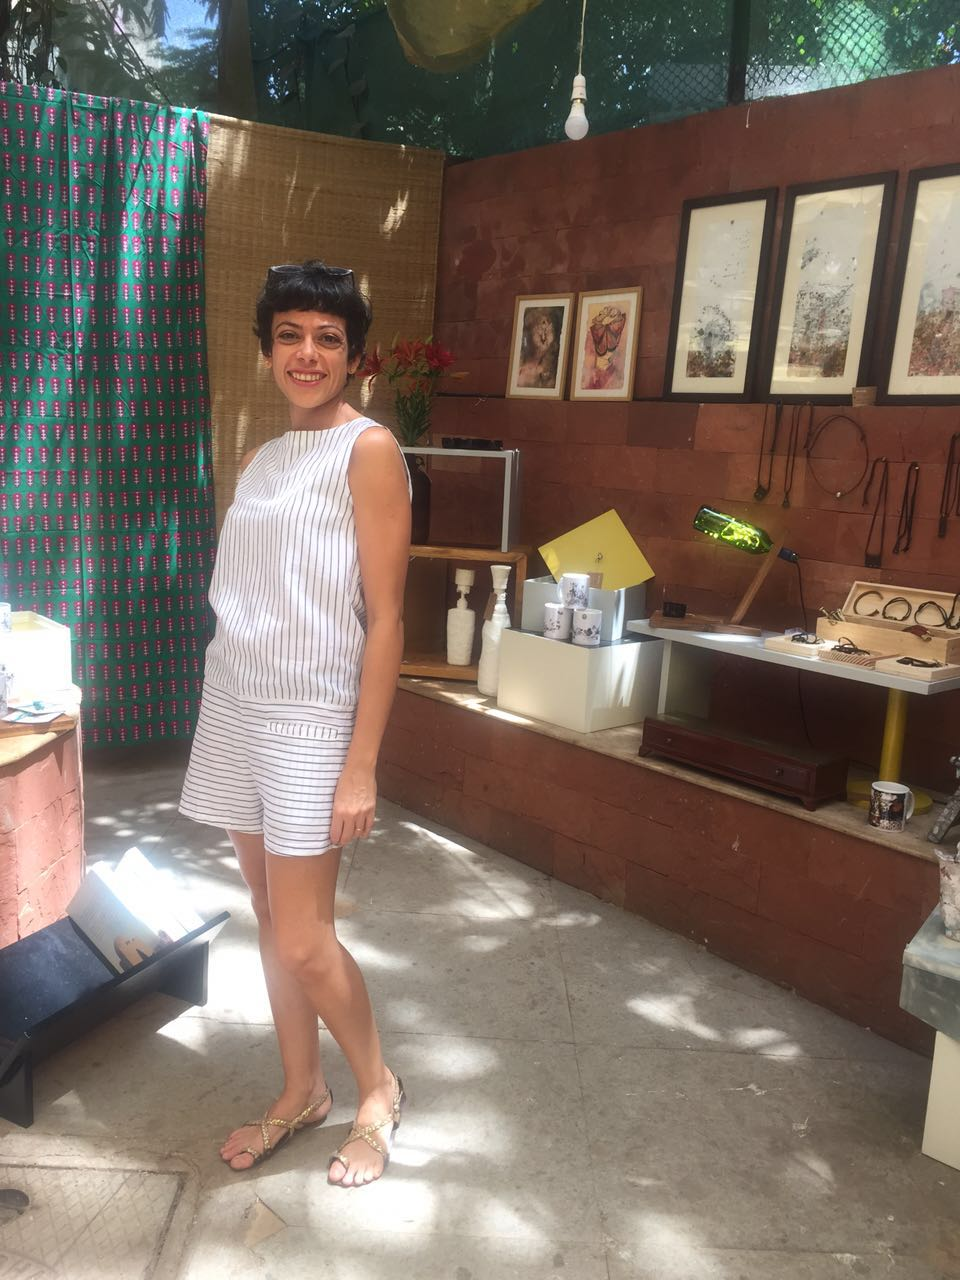 Artist and Designer Ratna Gupta poses in front of her stall - RESTORIES, at the Vintage Garden, Bandra, Mumbai. She is wearing a playsuit designed by Pallavi Dhyani of Three.